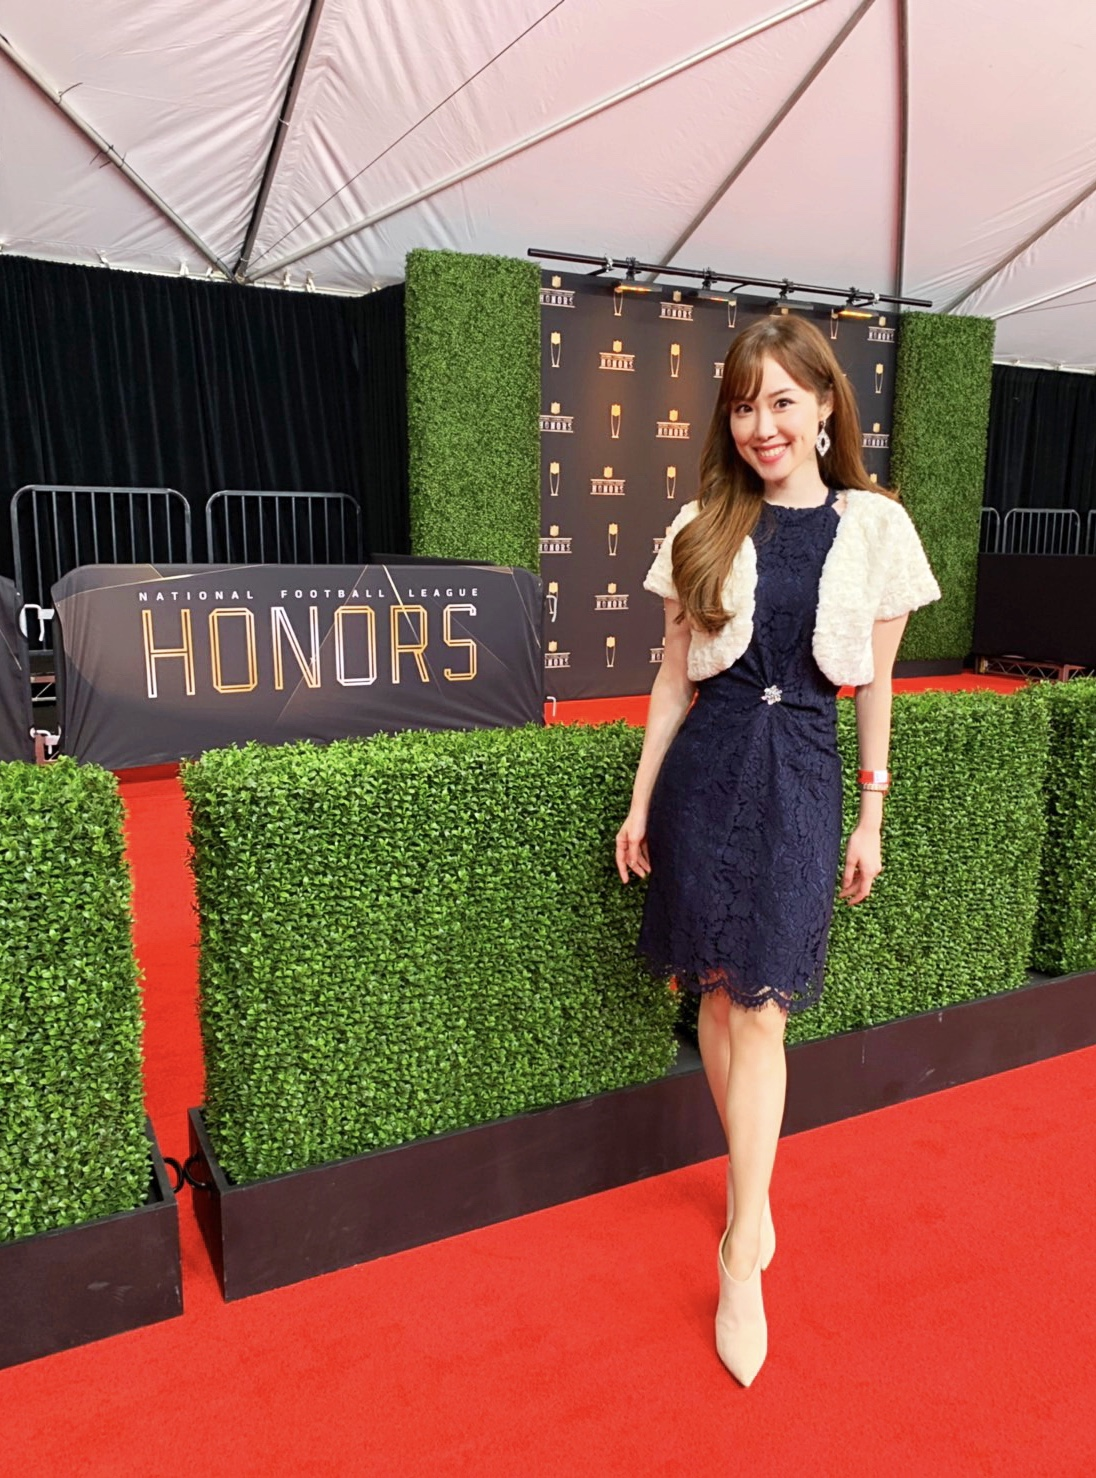 NFL Honors Red Carpet Interviews